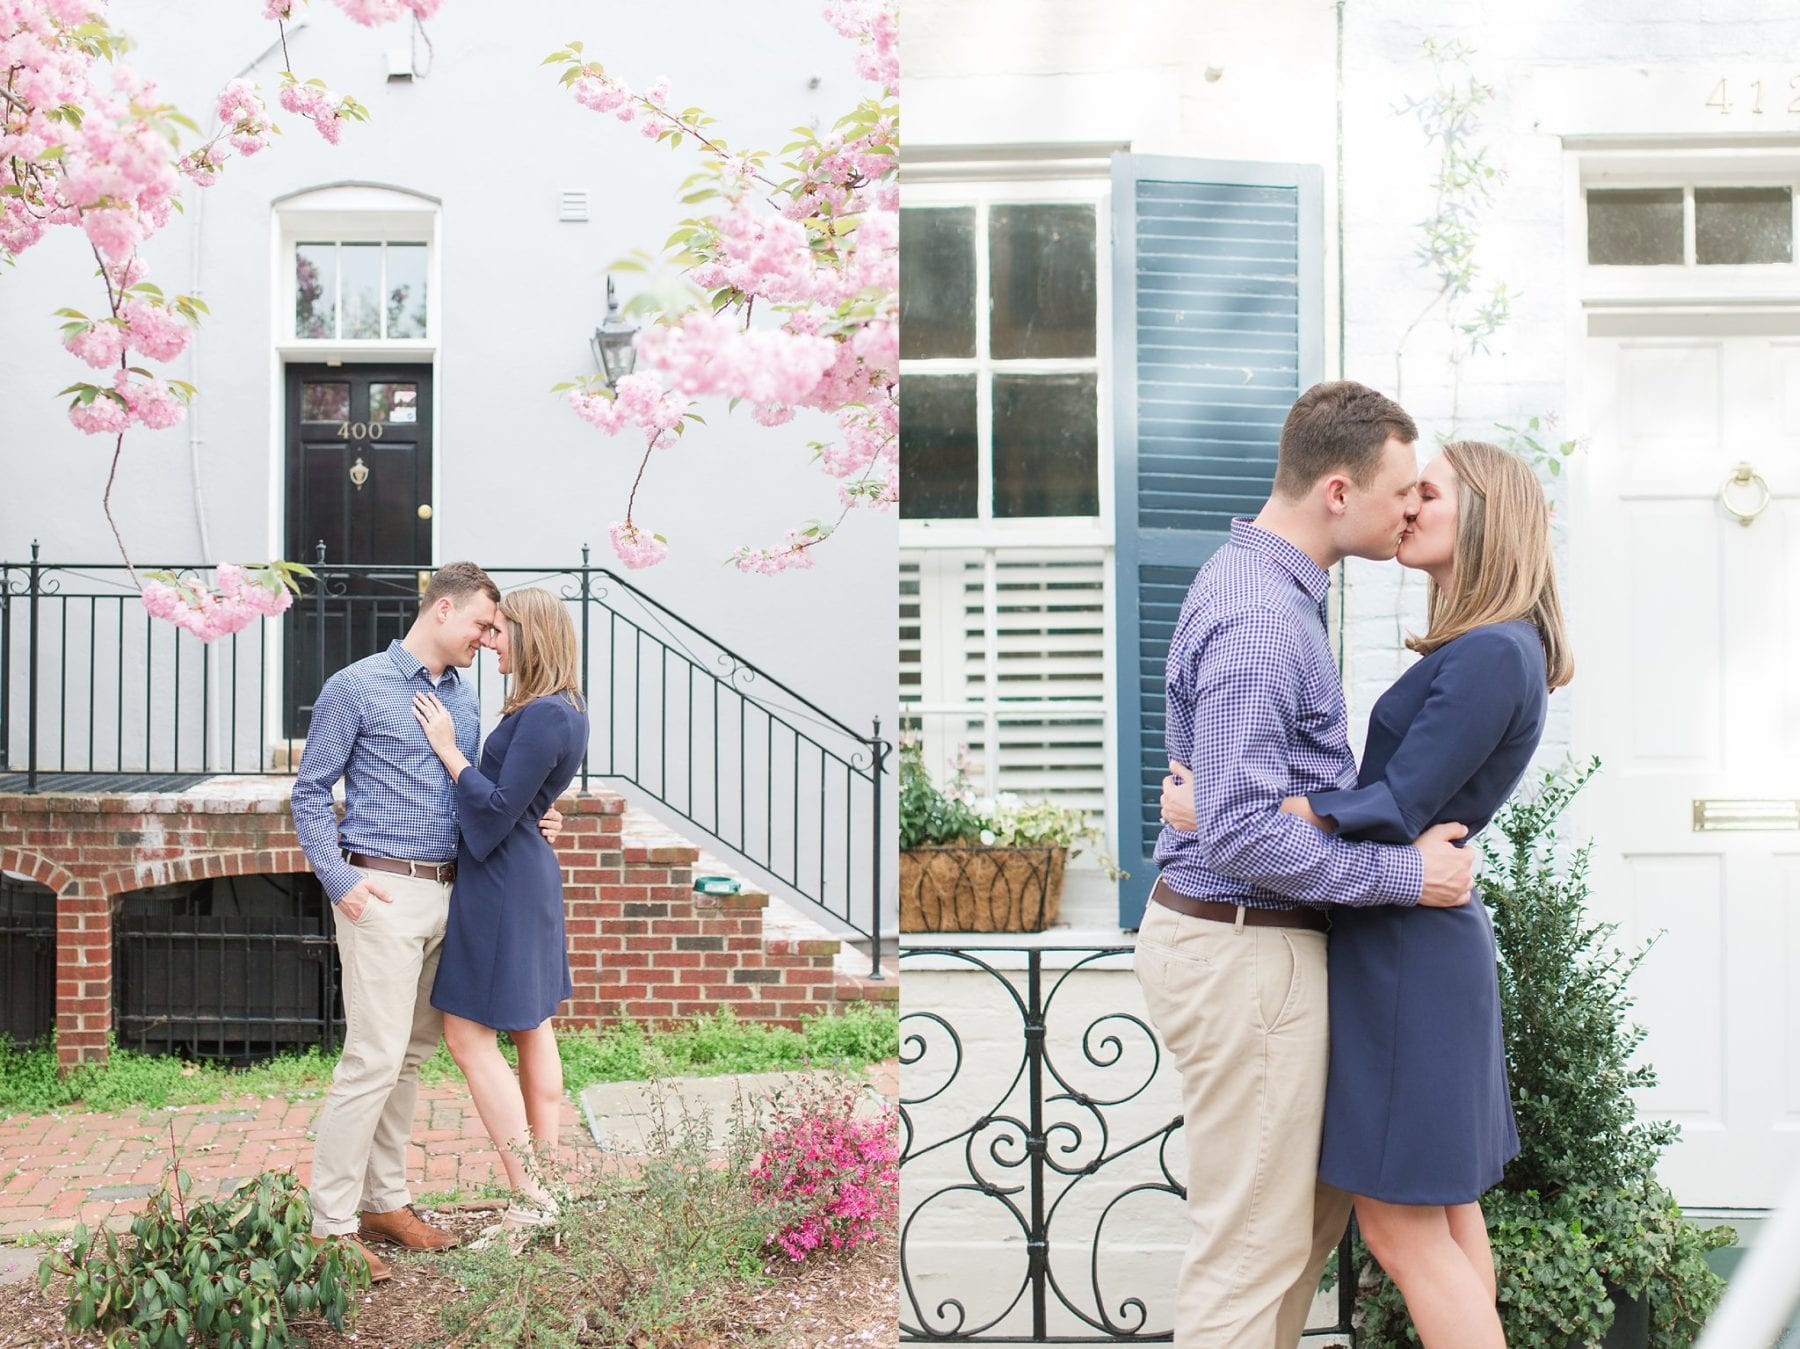 Springtime Old Town Alexandria Engagement Session Matt & Maxie Megan Kelsey Photography-78.jpg